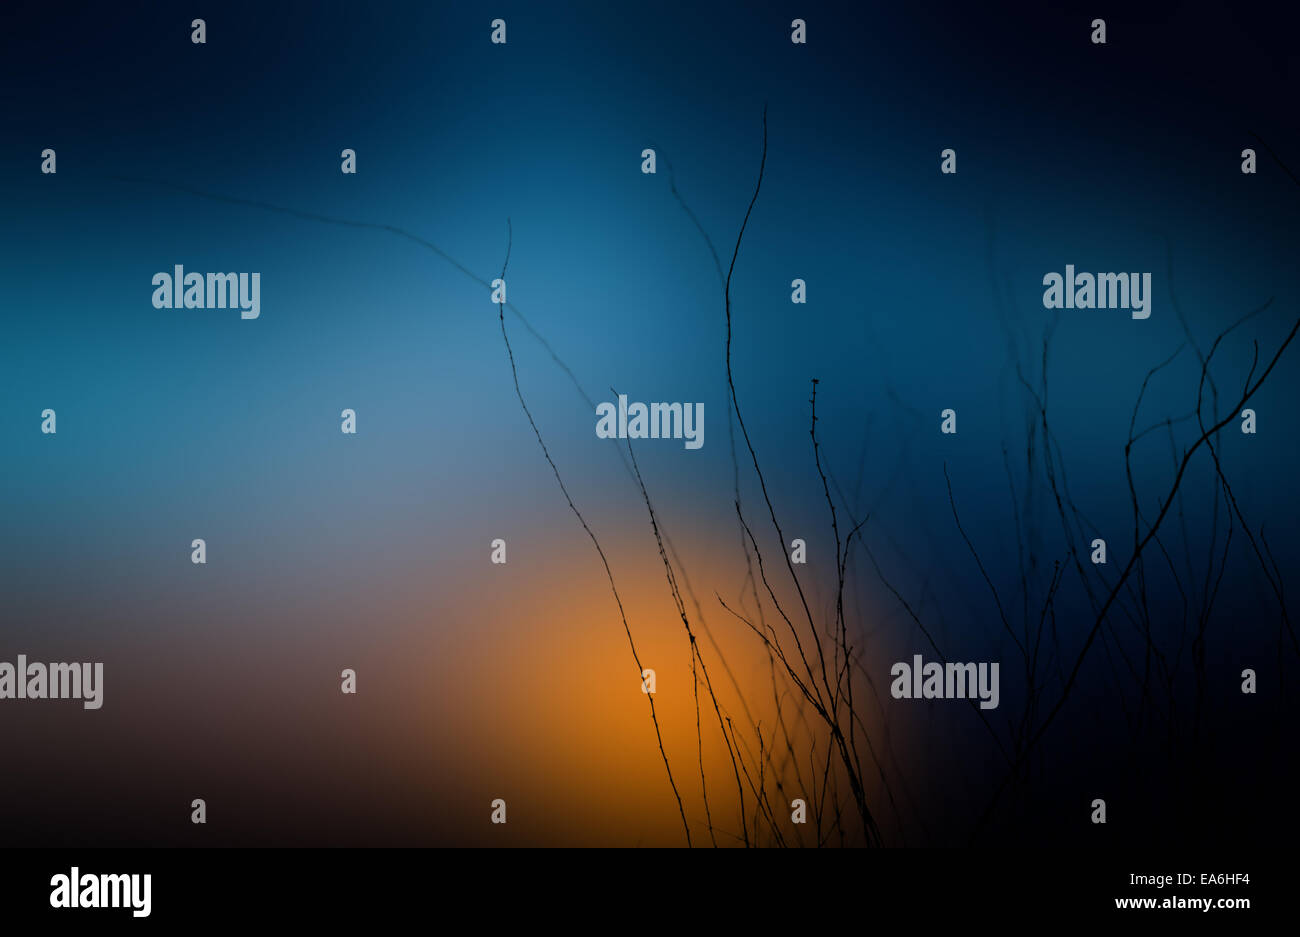 Silhouette of twigs at sunset - Stock Image